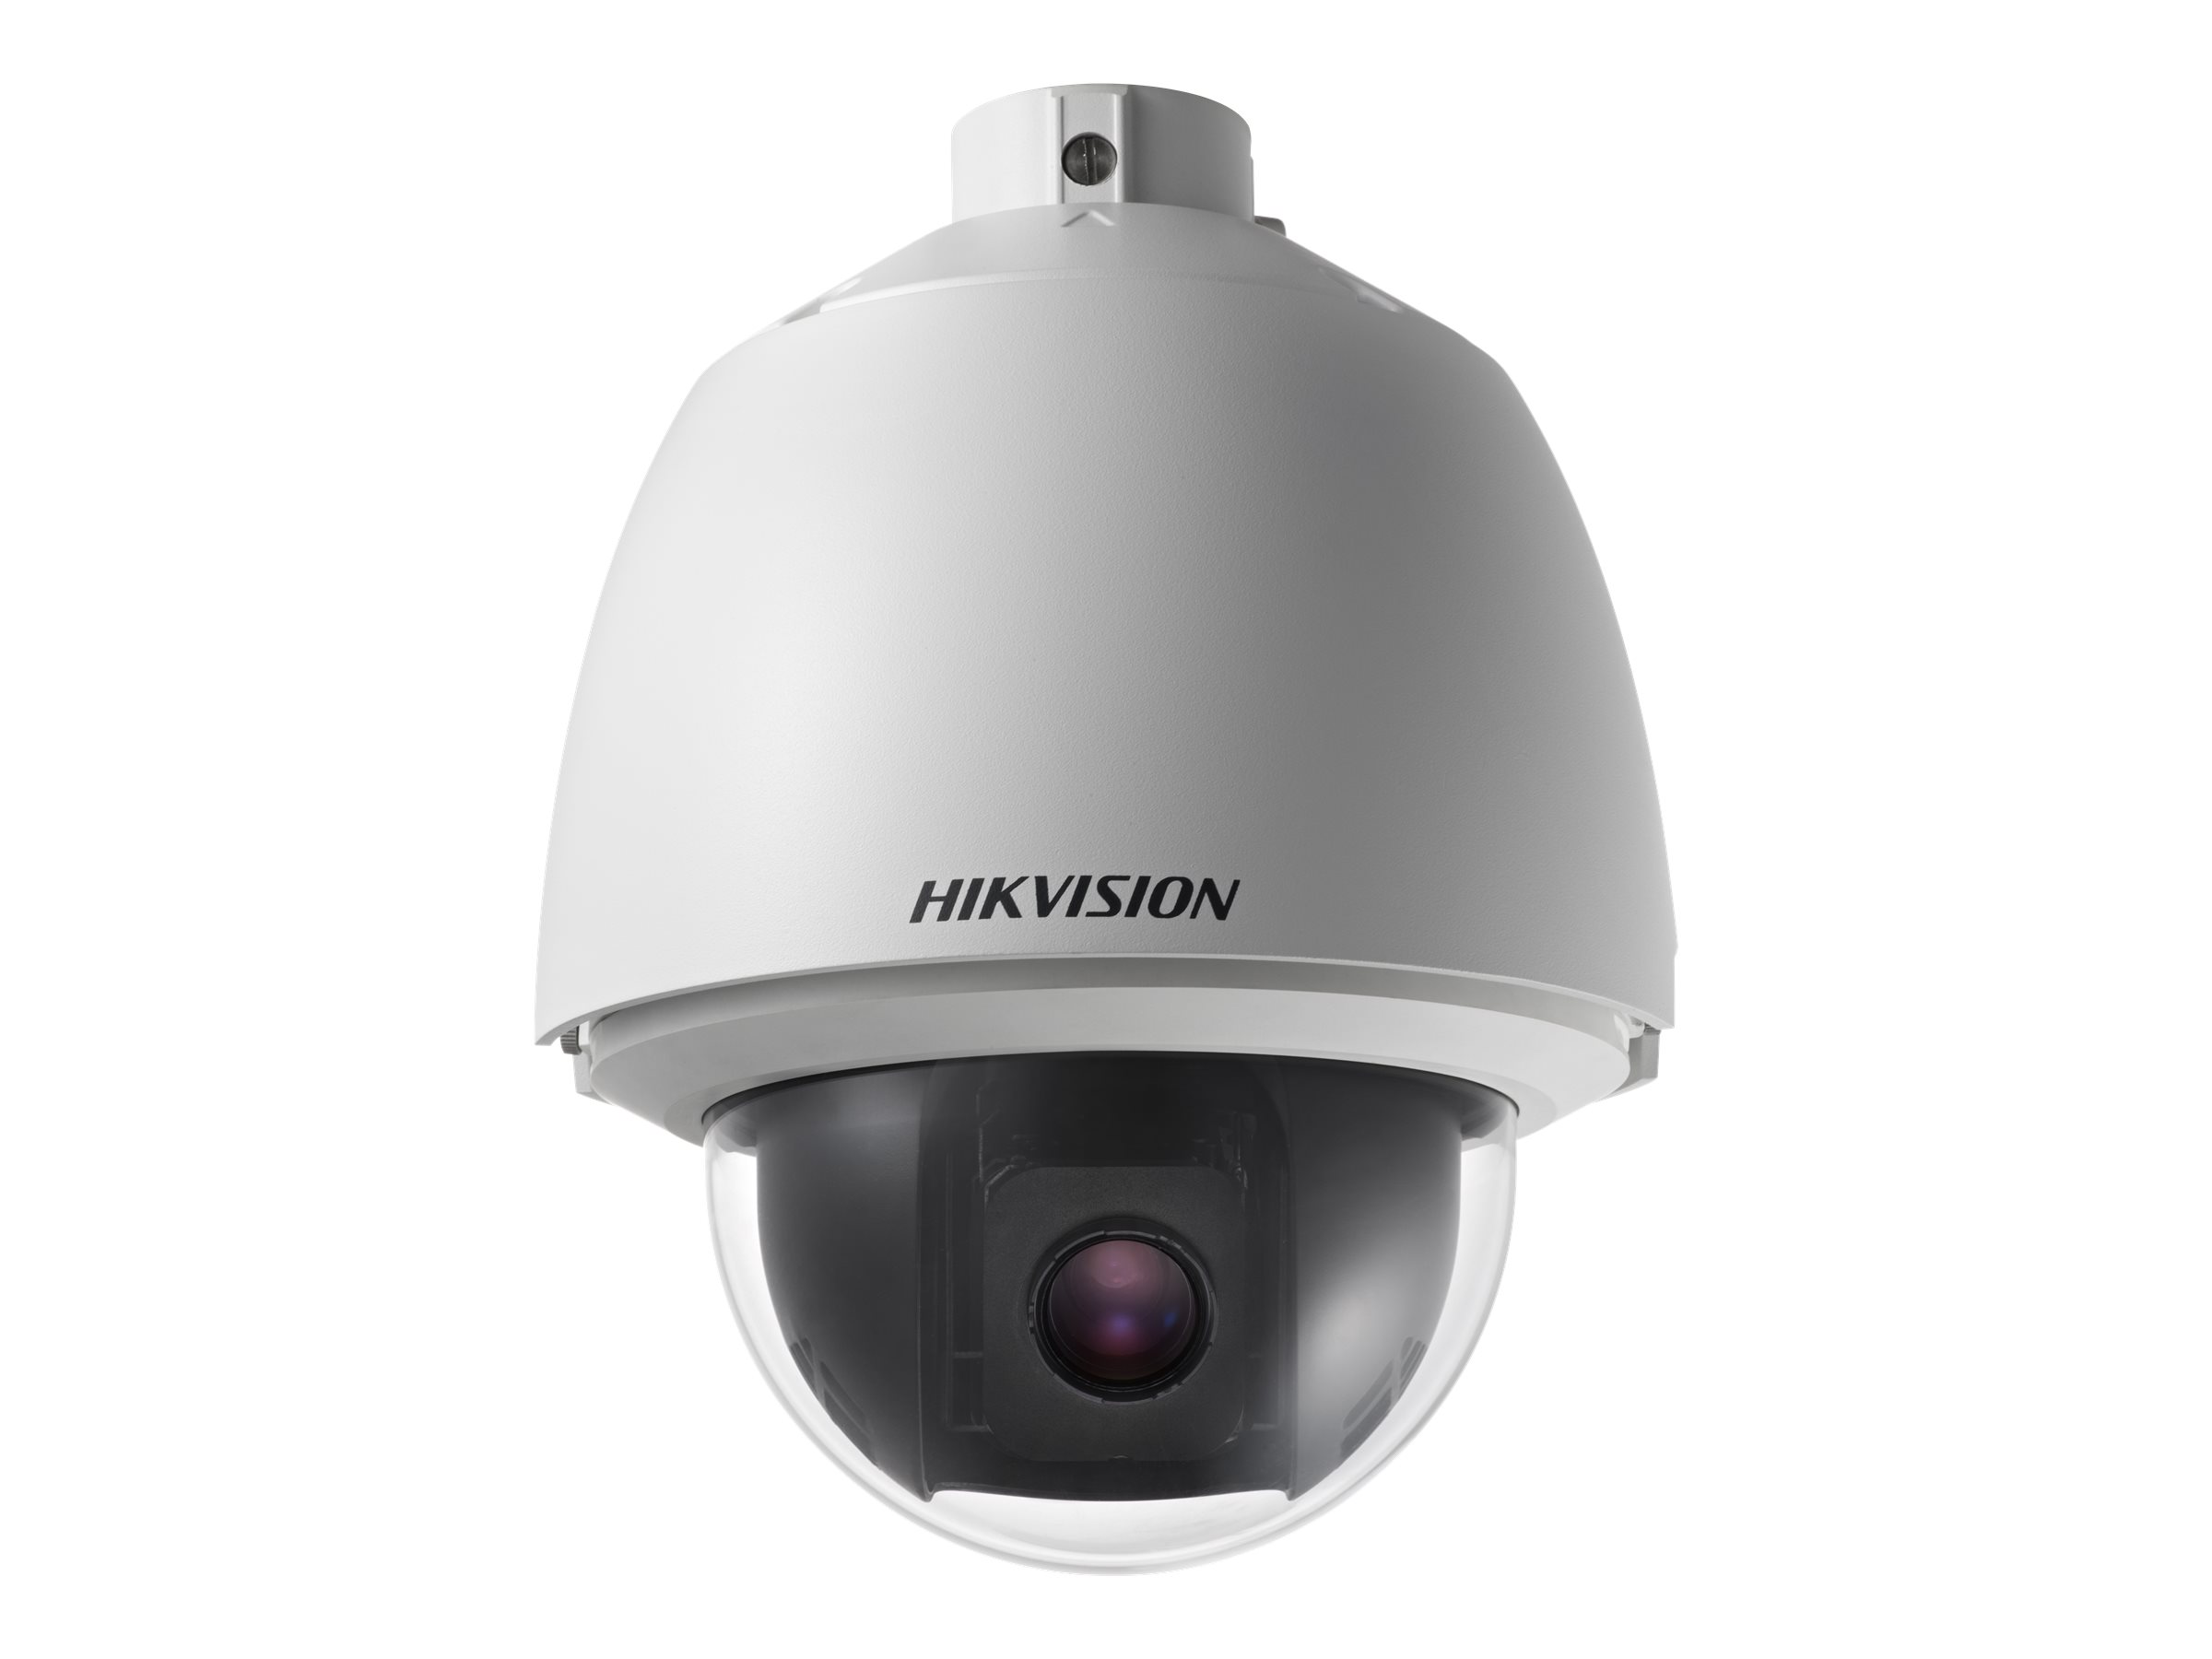 Hikvision 1.3MP PTZ Dome Network Camera DS-2DE5174-AE - network surveillance camera